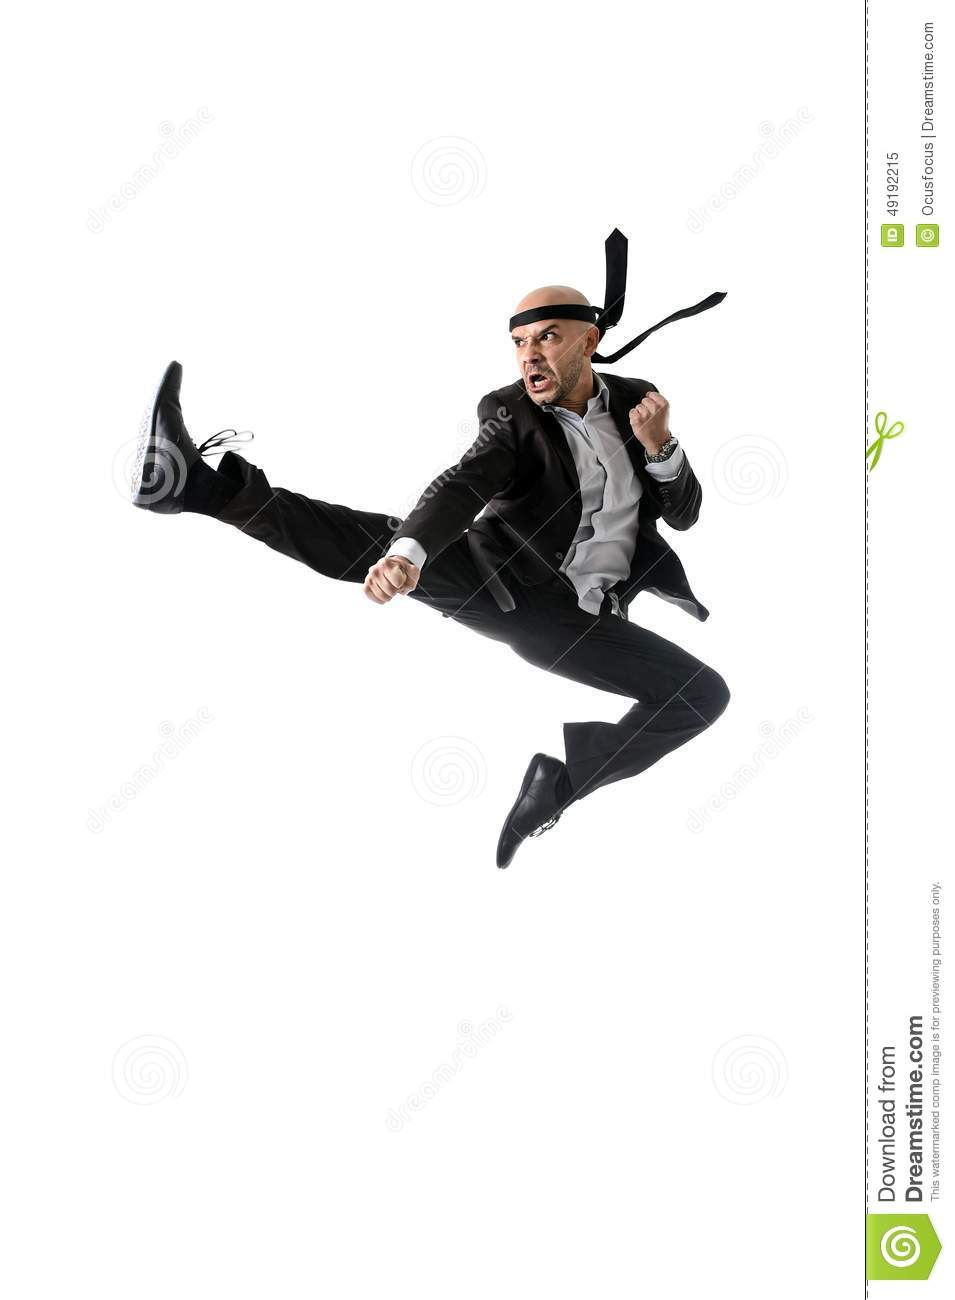 Funny Aggressive Businessman Wearing Suit Jumping On The Air In Kung